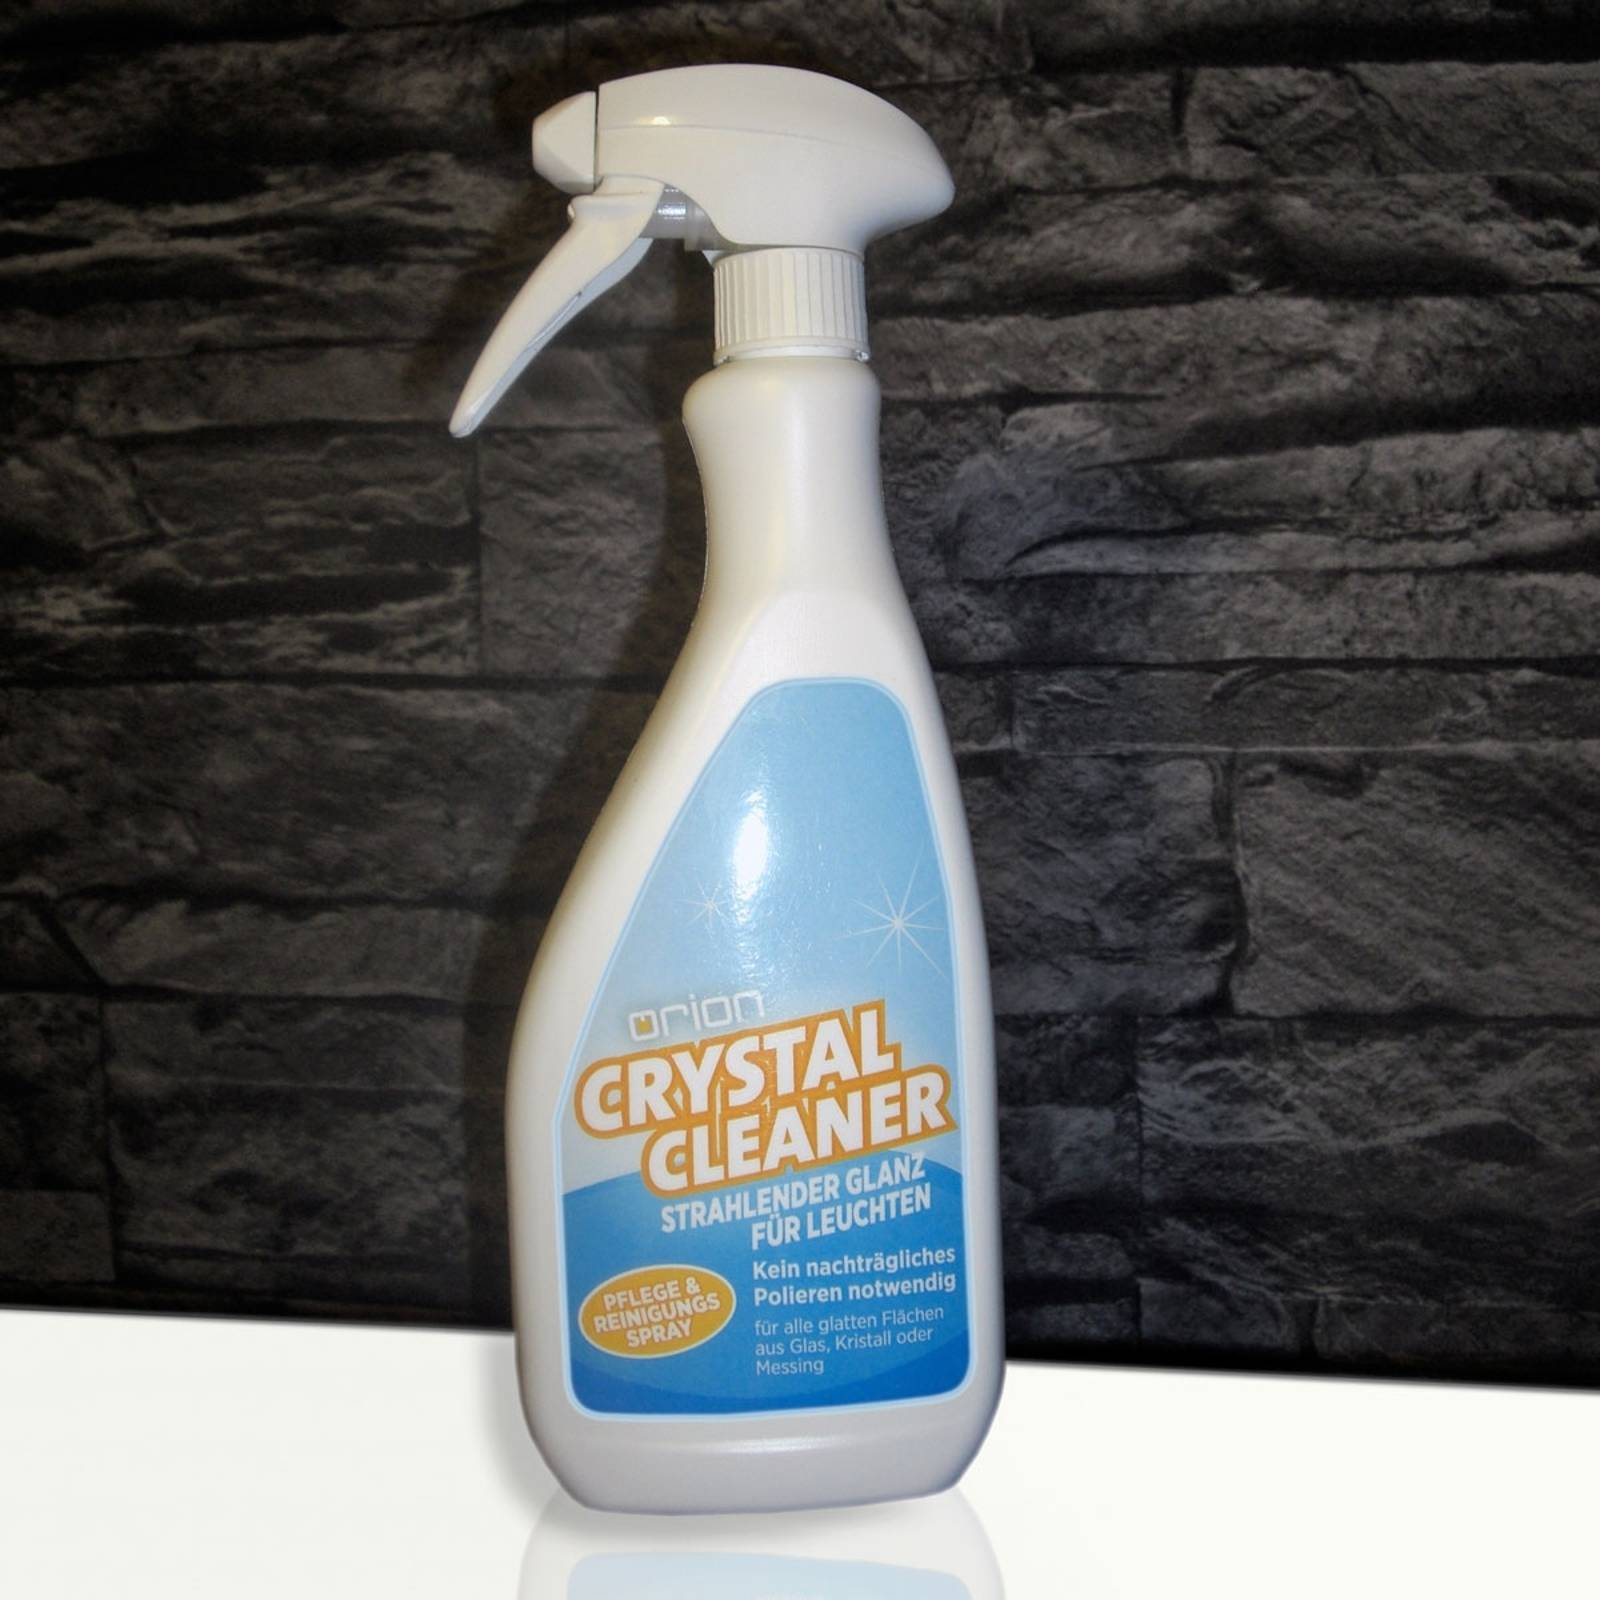 Orion Crystal Cleaning Spray from Orion